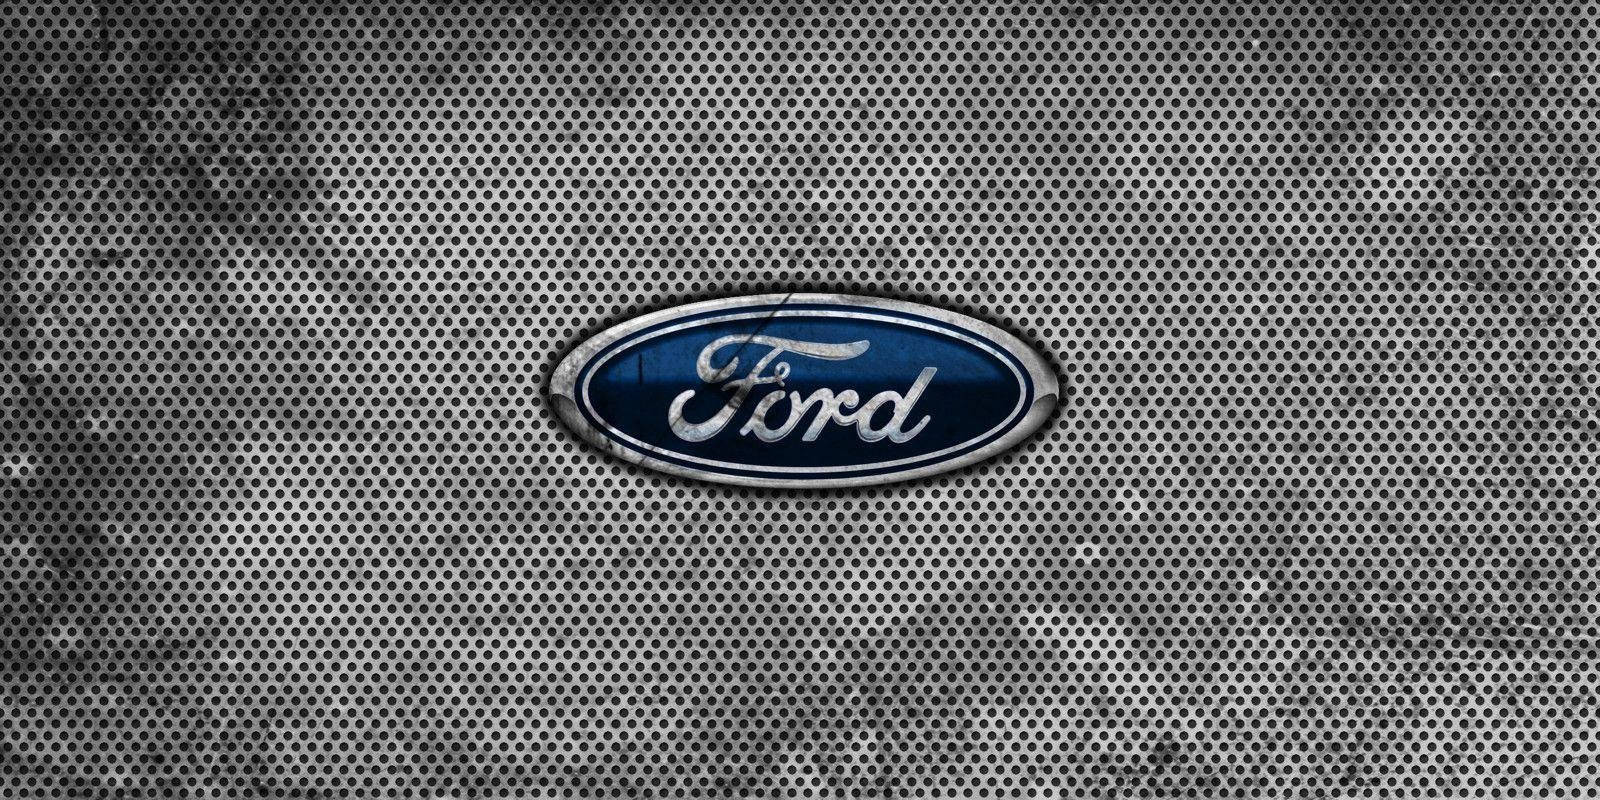 Ford wallpapers hd